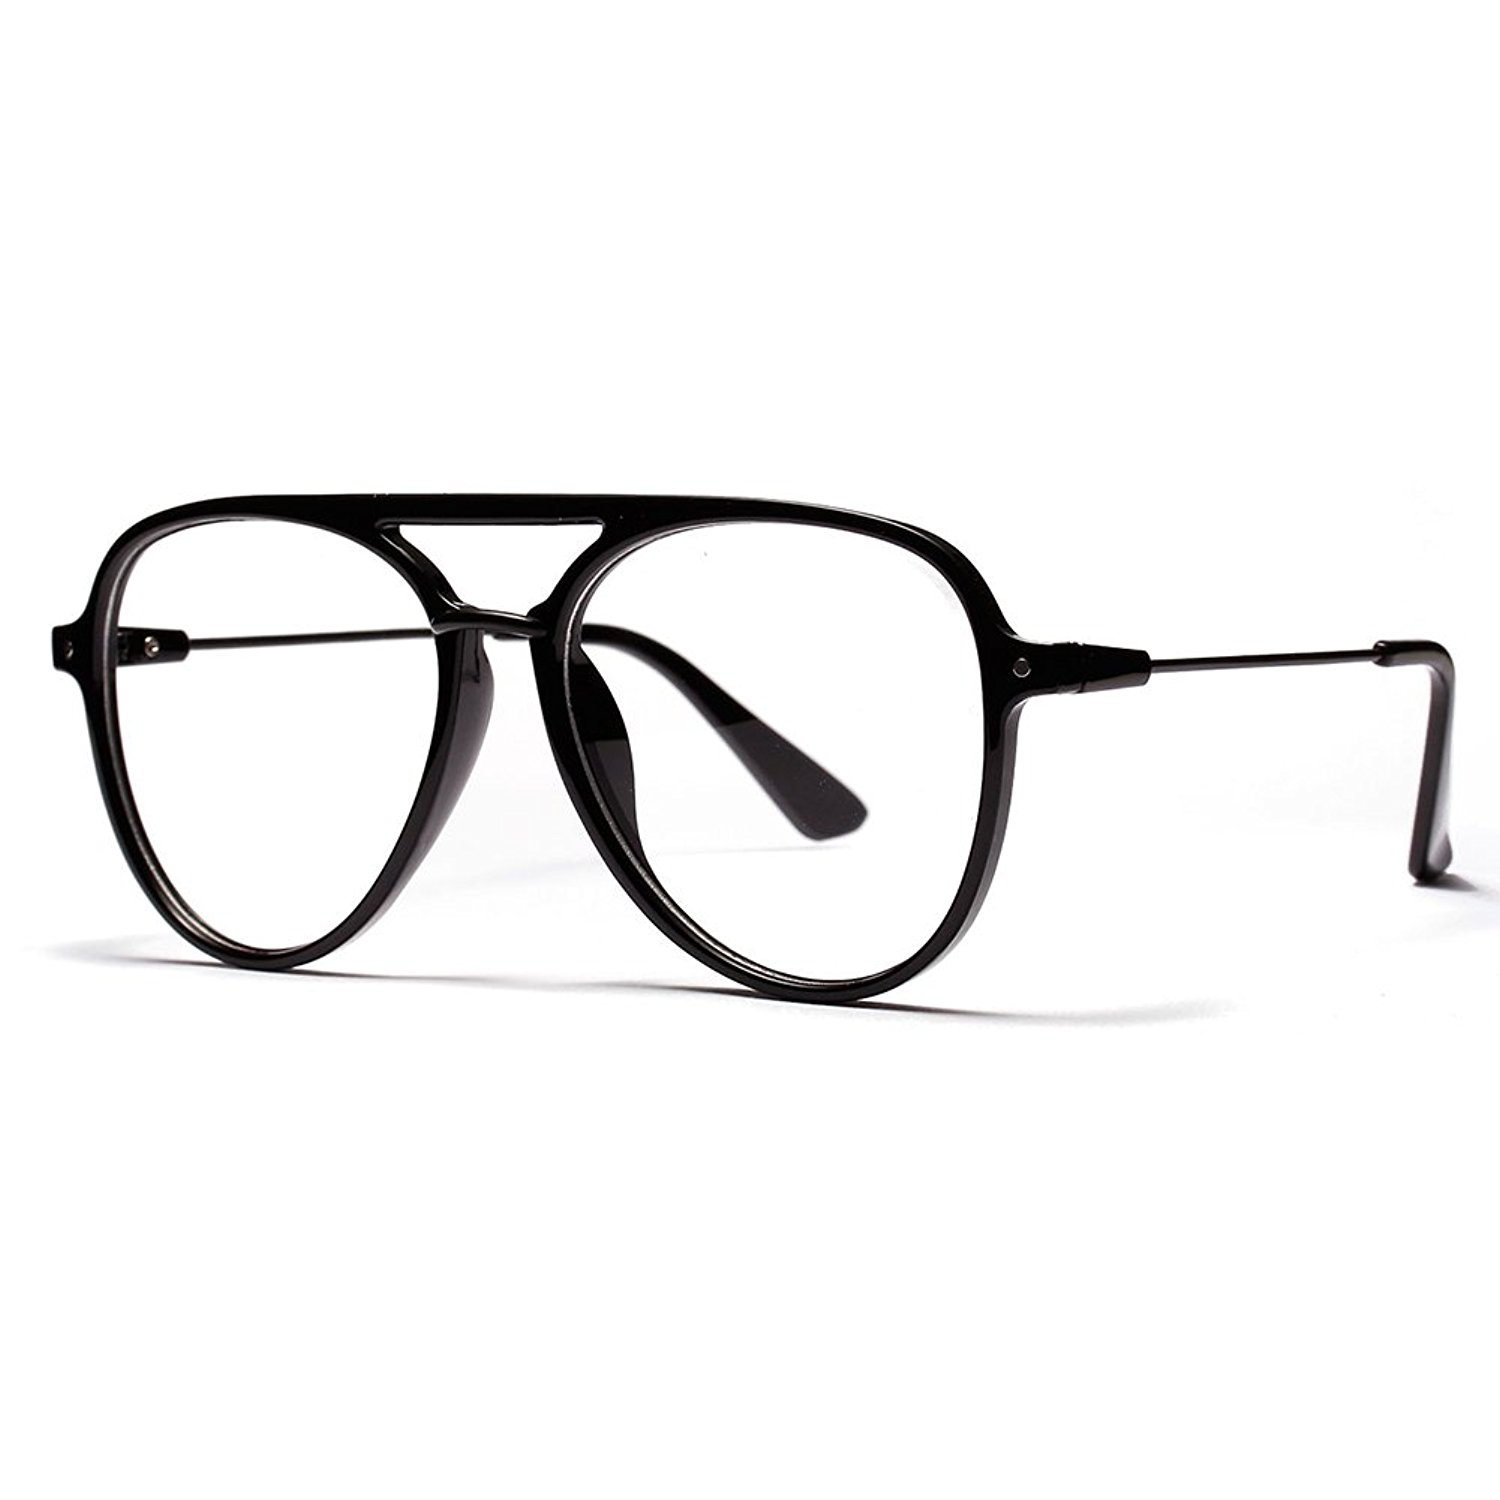 80a85692a2 Get Quotations · OVZA Fashion Big Glasses Frames Mens Transparent Eyeglasses  Frames Women Classic